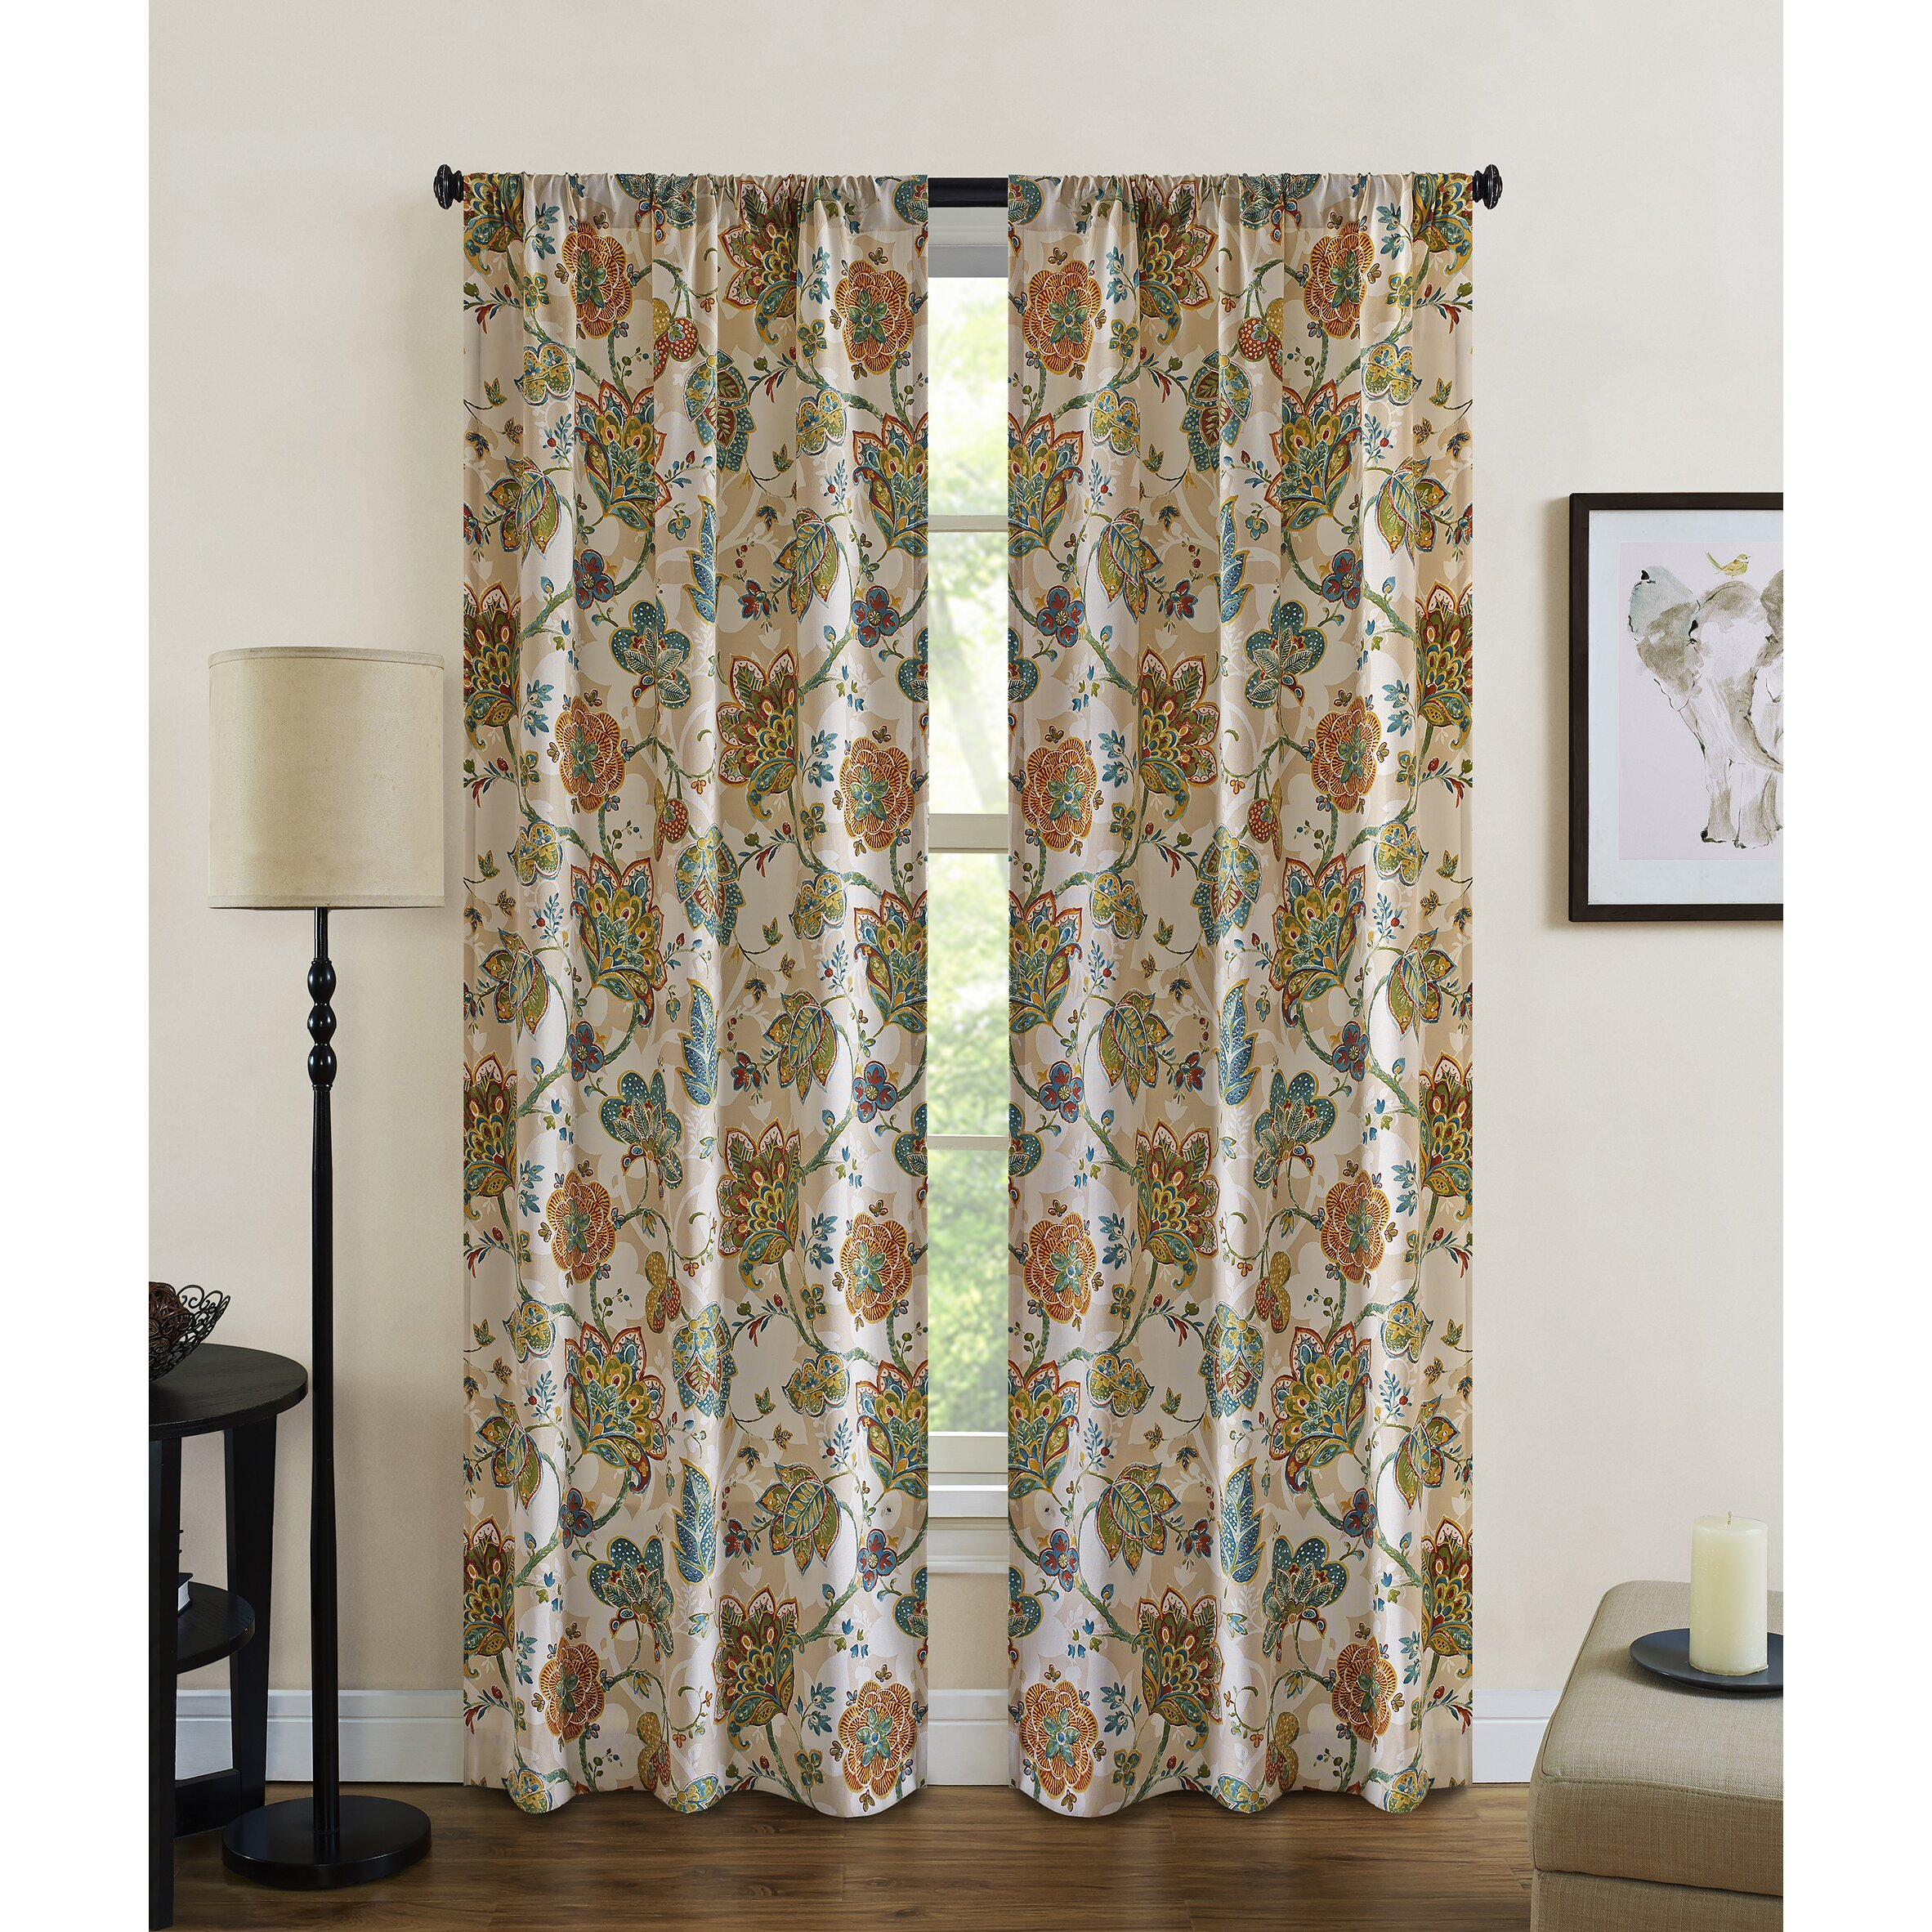 Striped outdoor curtains - Jubilee Indoor Outdoor Curtain Panels